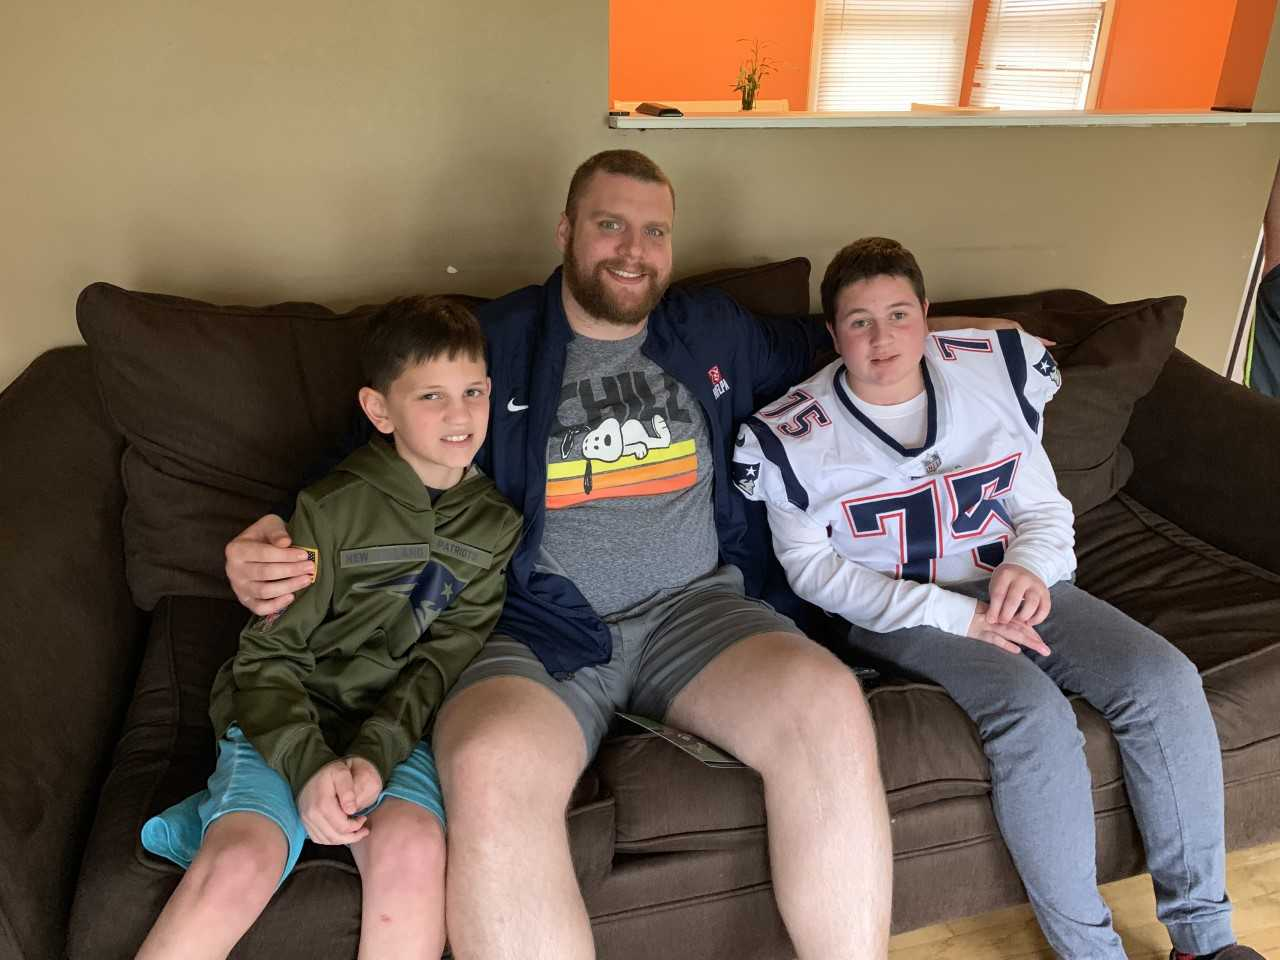 2019-04-26 patriots player visits north haven cancer patient_1556333592095.jfif.jpg